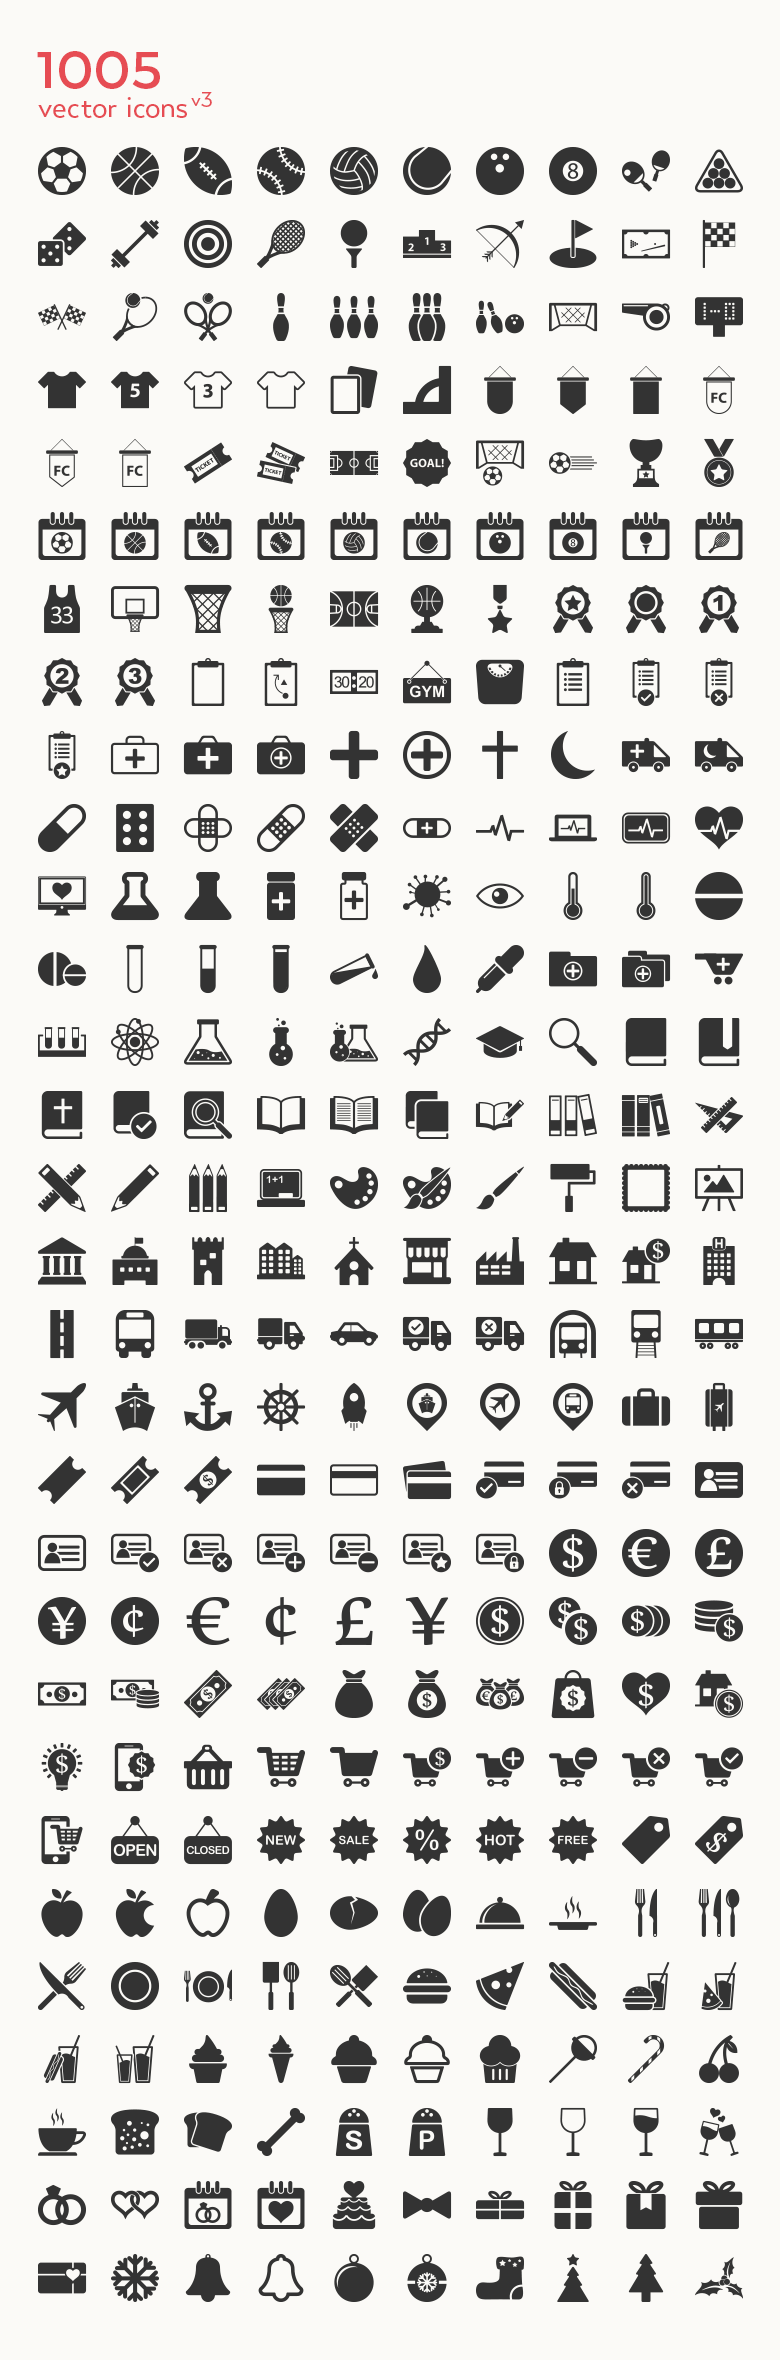 1005-vector-icons-preview-2b